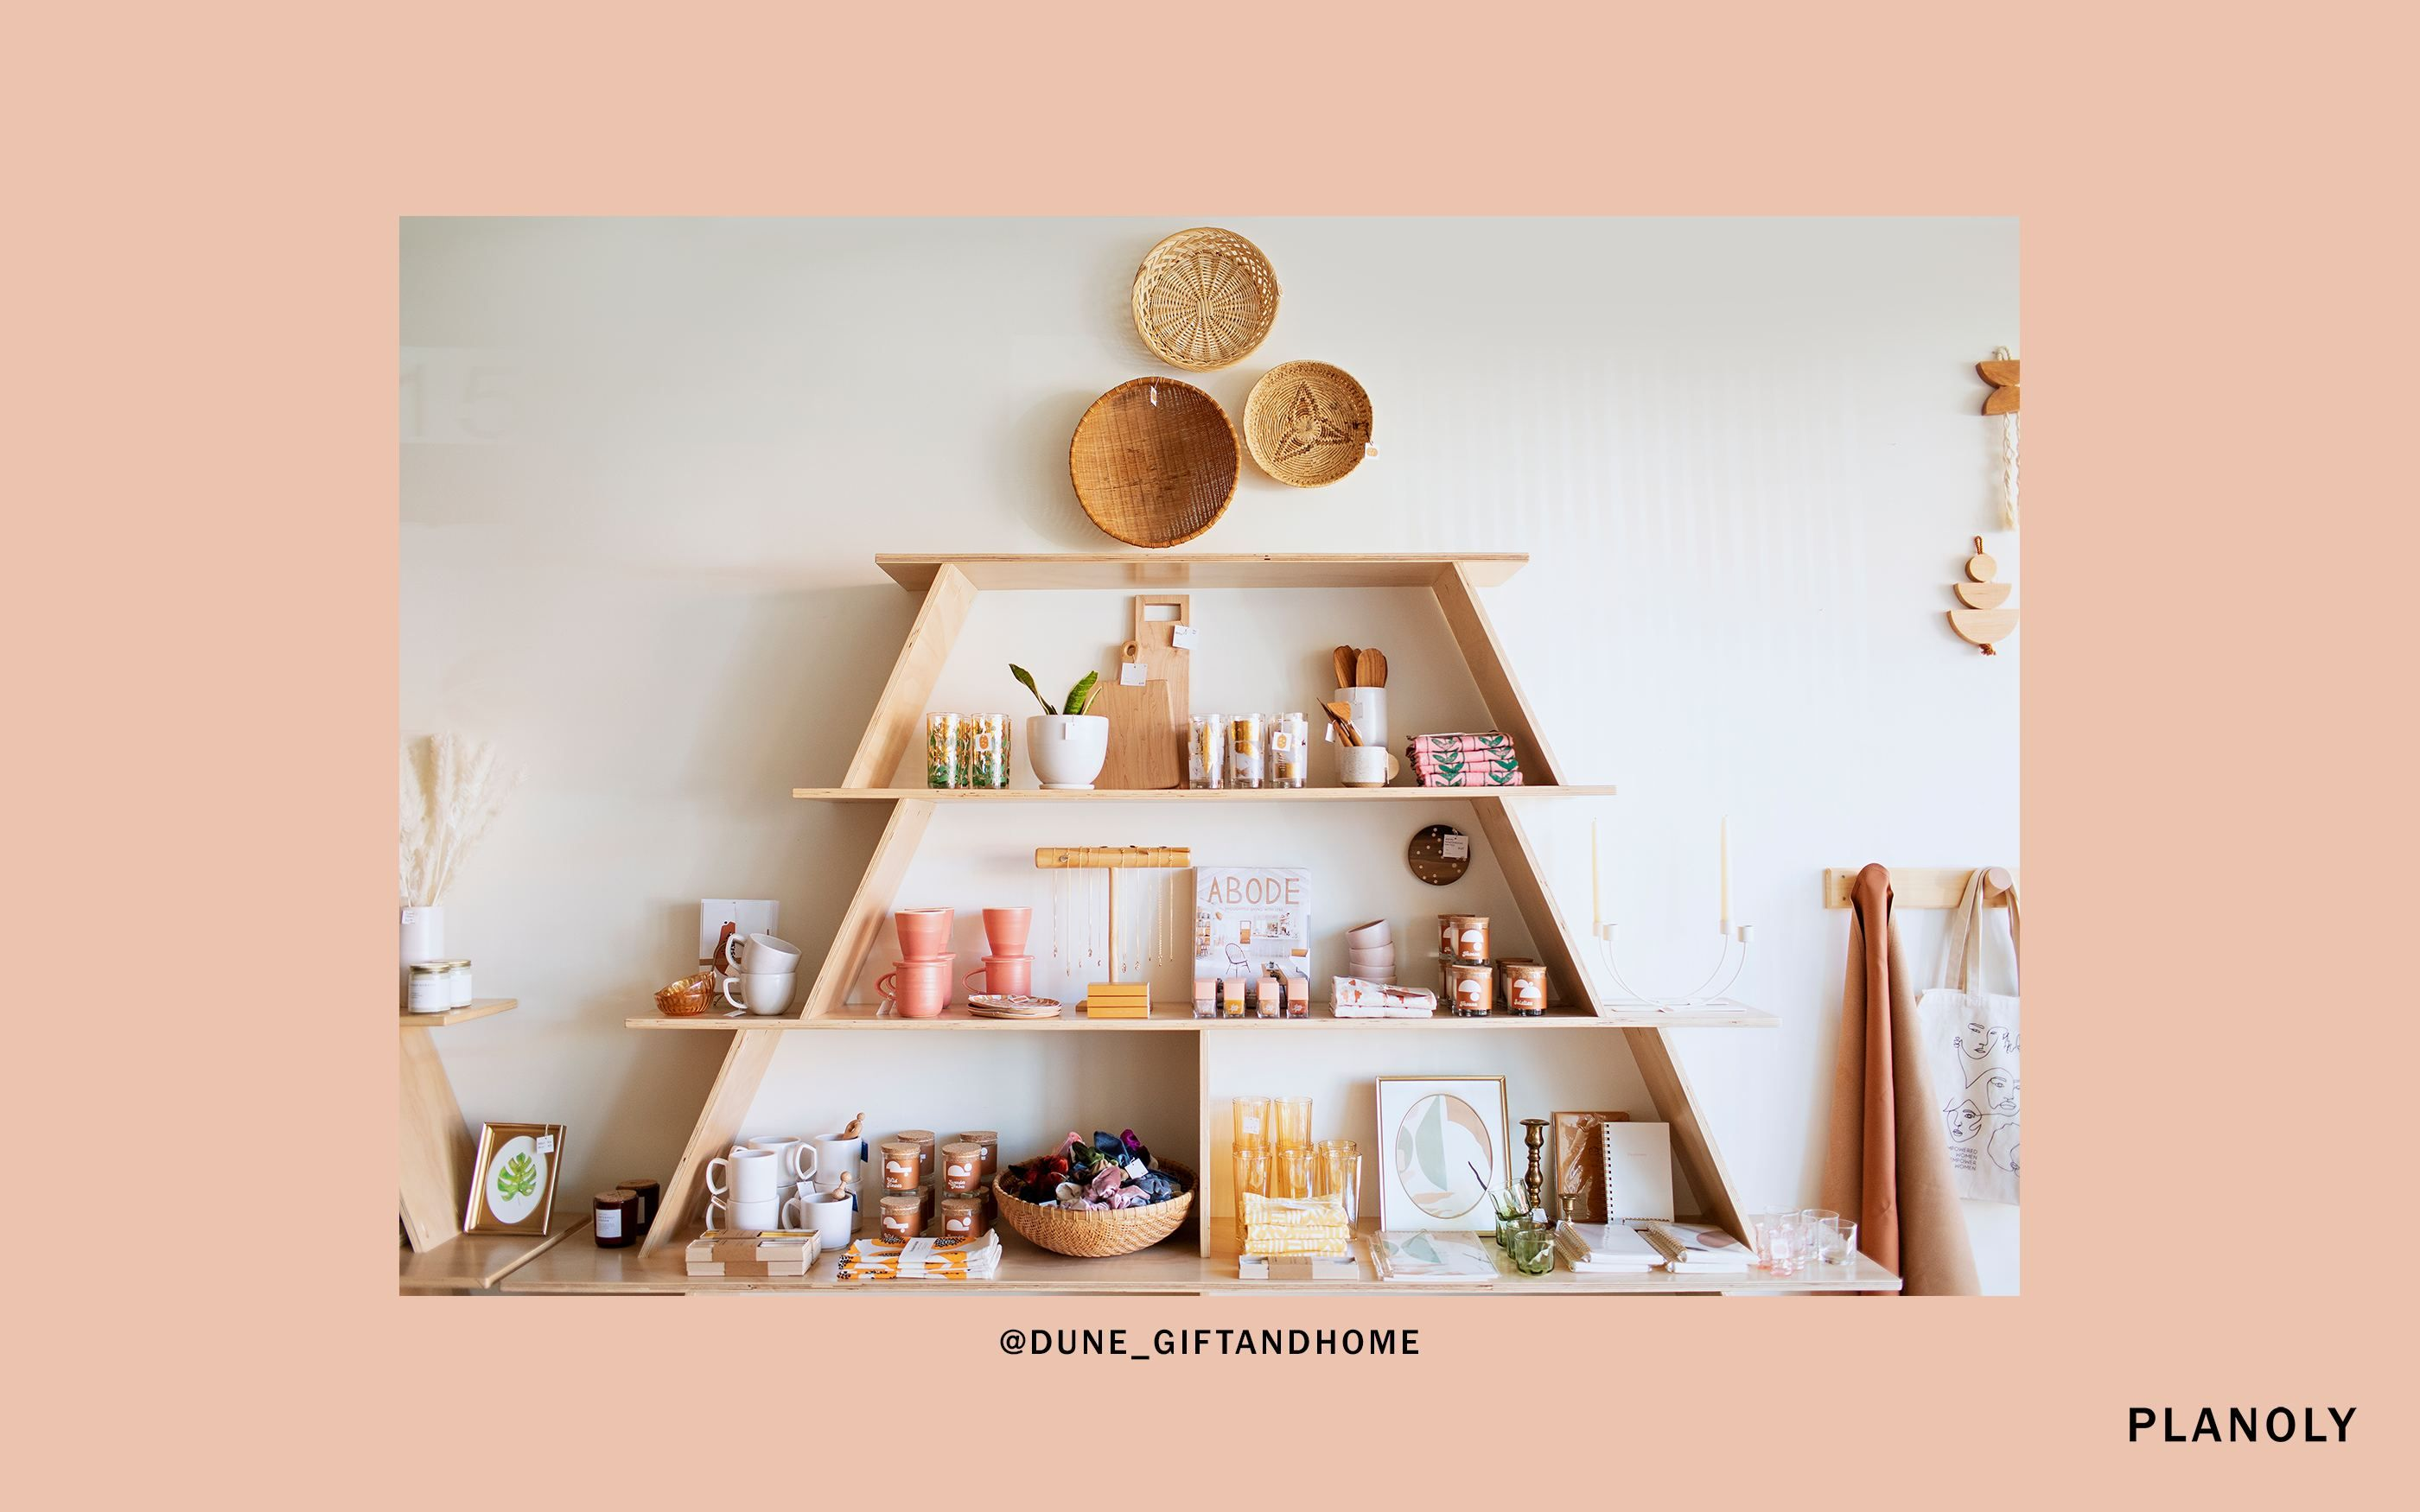 PLANOLY-Blog-Post-SMB-Case-Study-Cires-Jewelry-and-Gift-Shop-Image-6